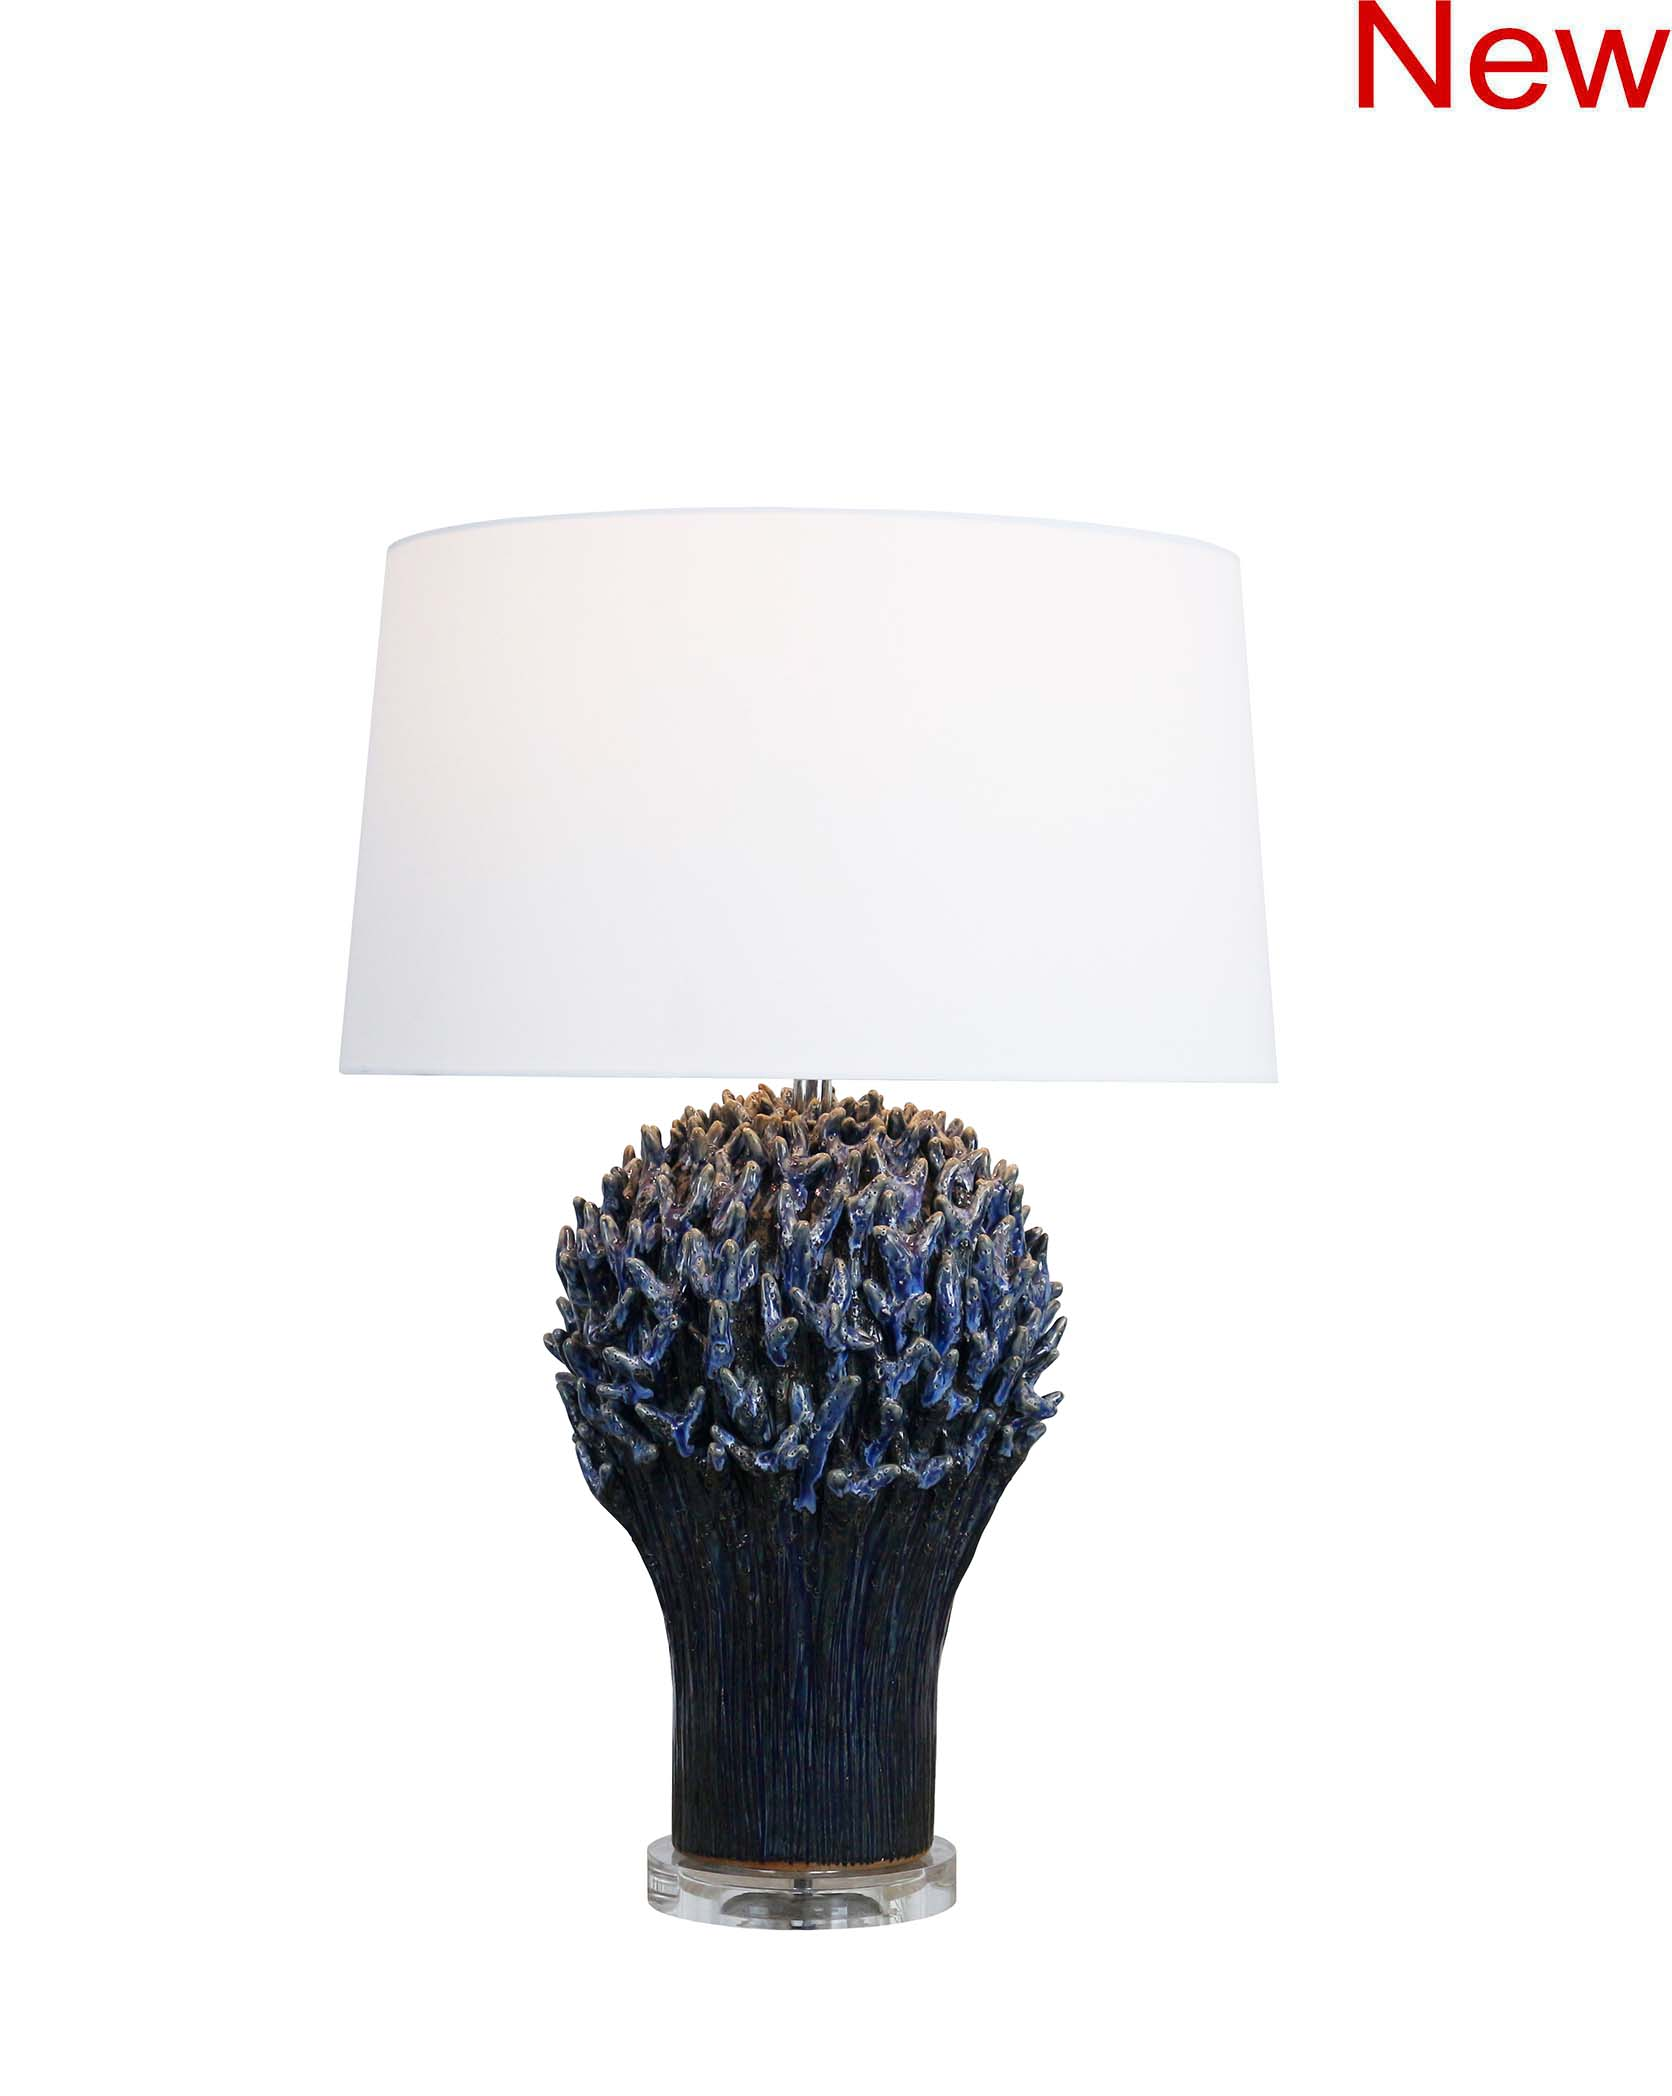 Staghorn coral table lamp product photo #2